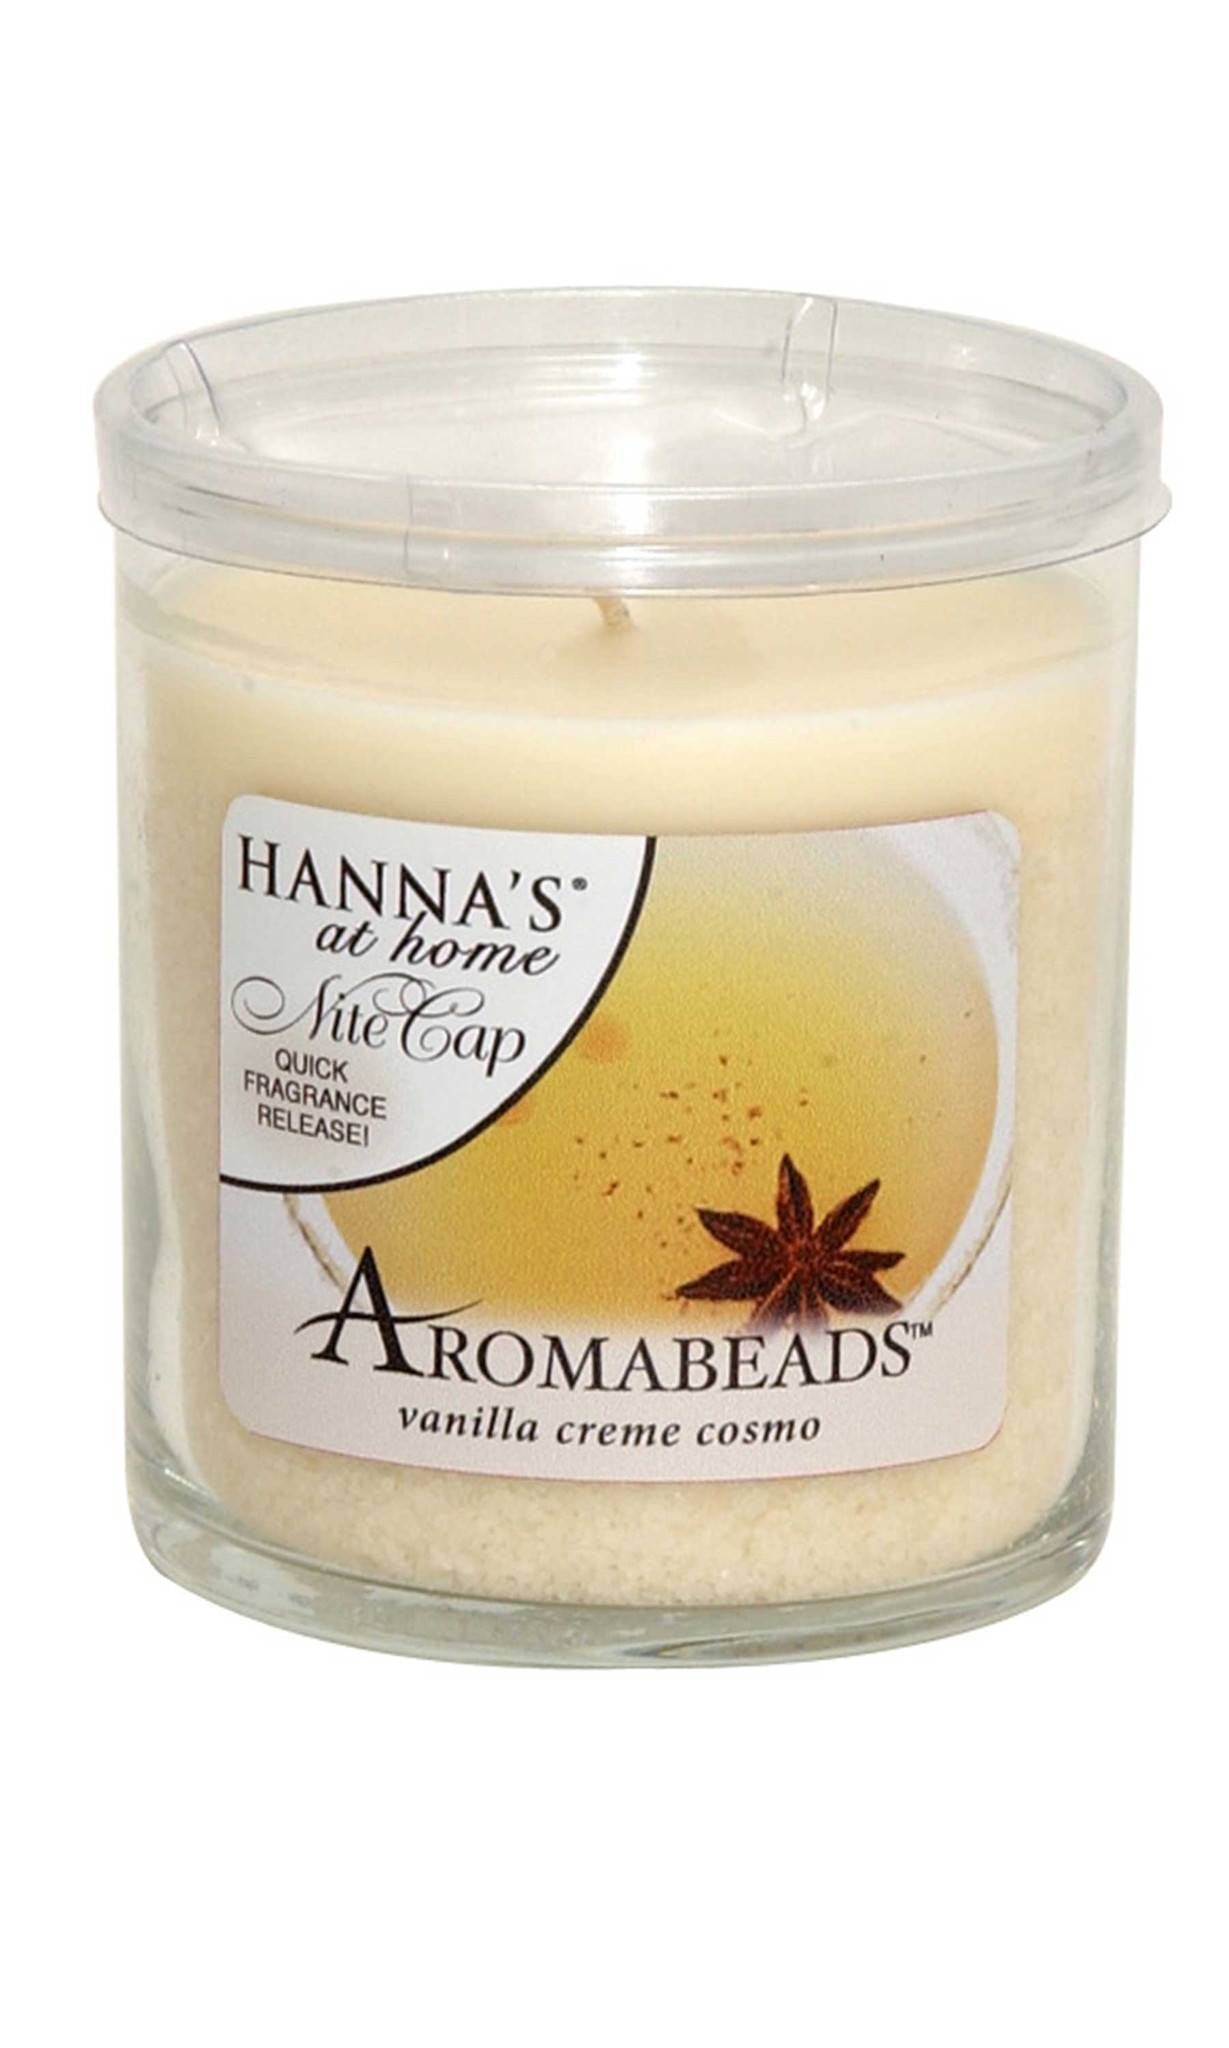 Aromabeads Vanilla Creme Cosmo Scented Tumbler - Candlemart.com